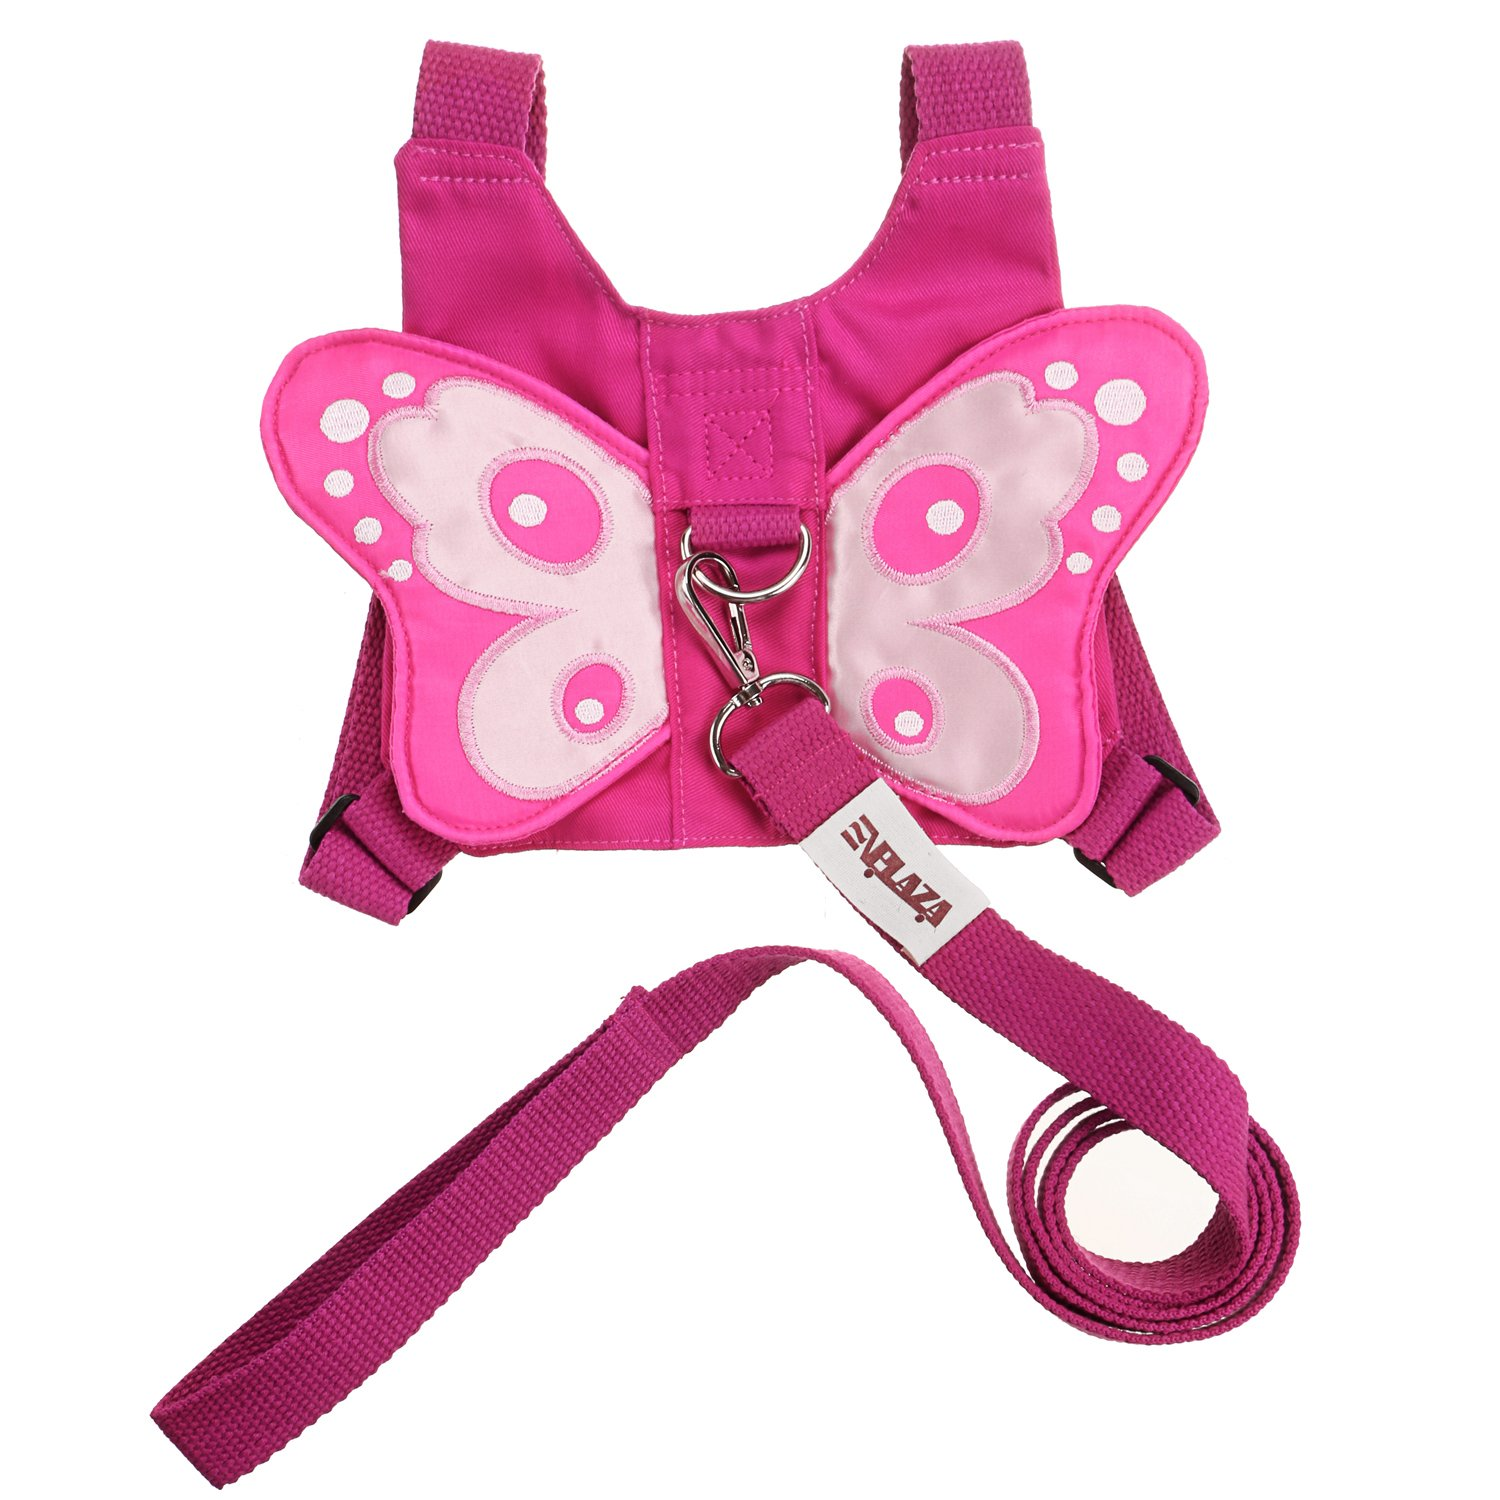 EPLAZA Baby Toddler Walking Safety Butterfly Belt Harness with Leash Child Kid Assistant Strap (a) by EPLAZA